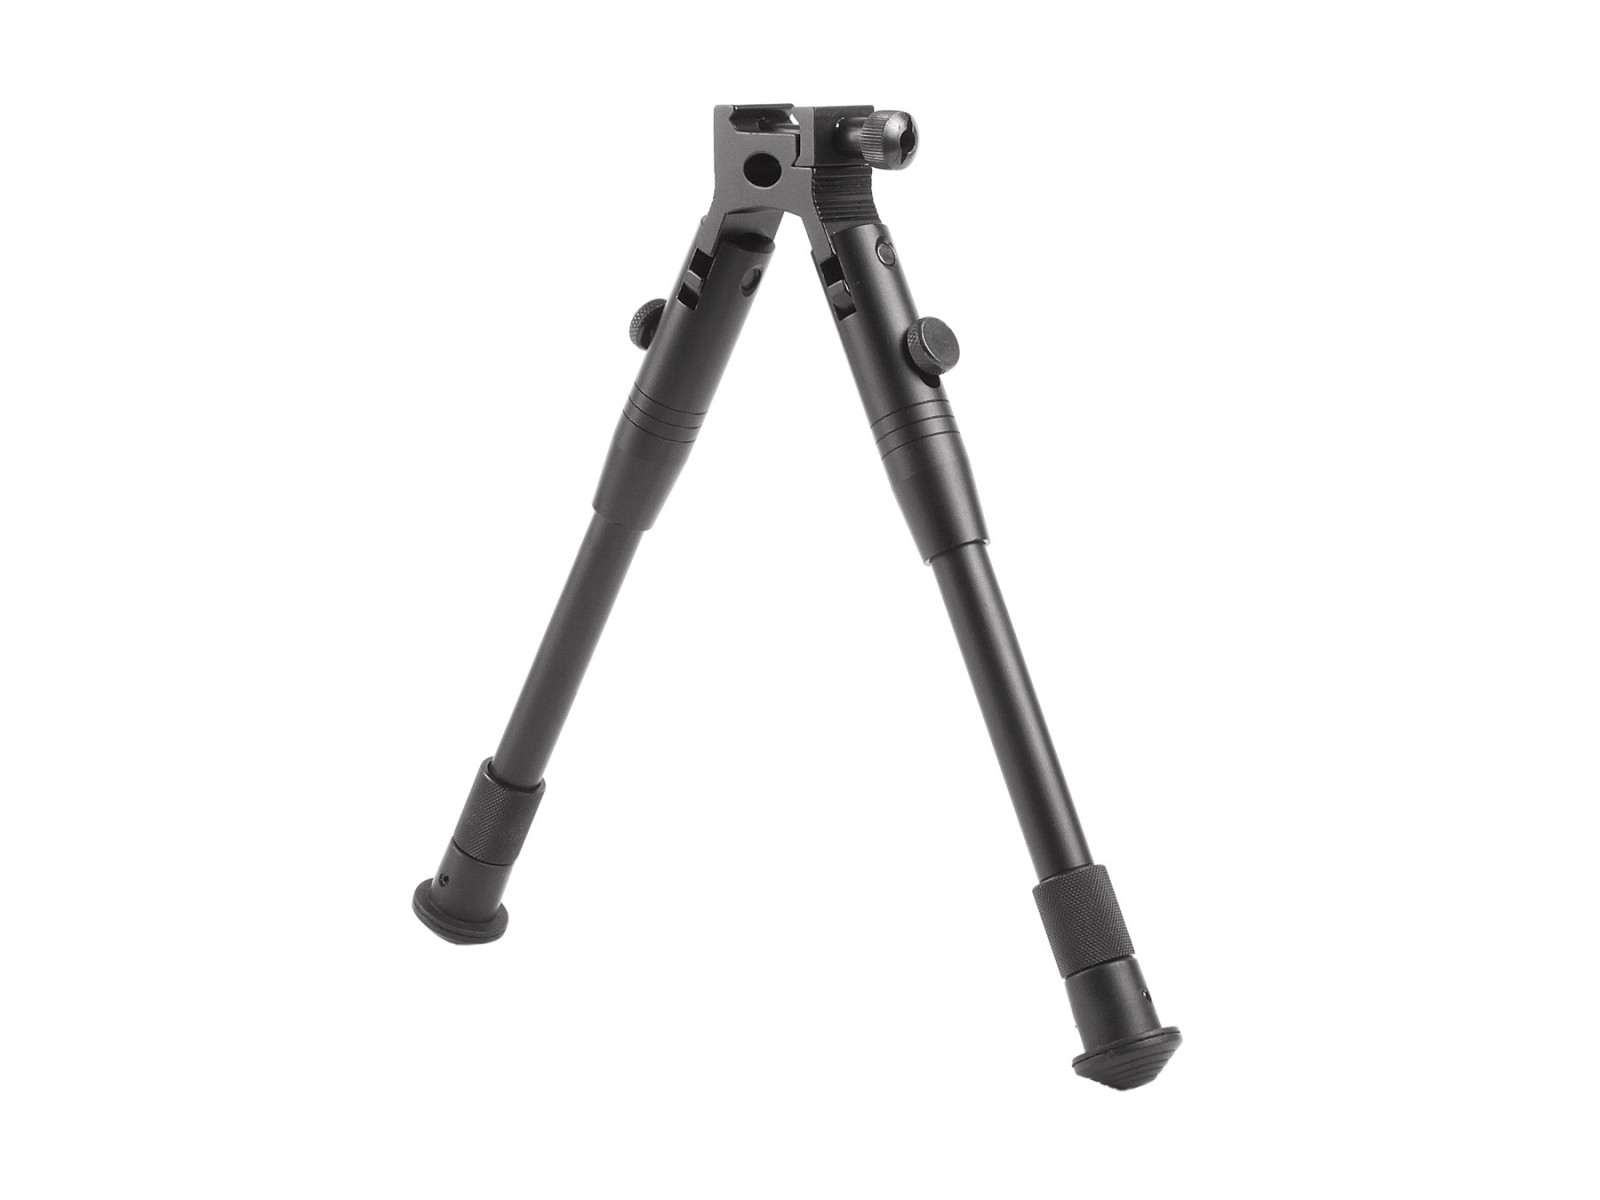 Hatsan Optima Universal Tactical Bipod, Picatinny Mount, Folding/Telescoping Legs